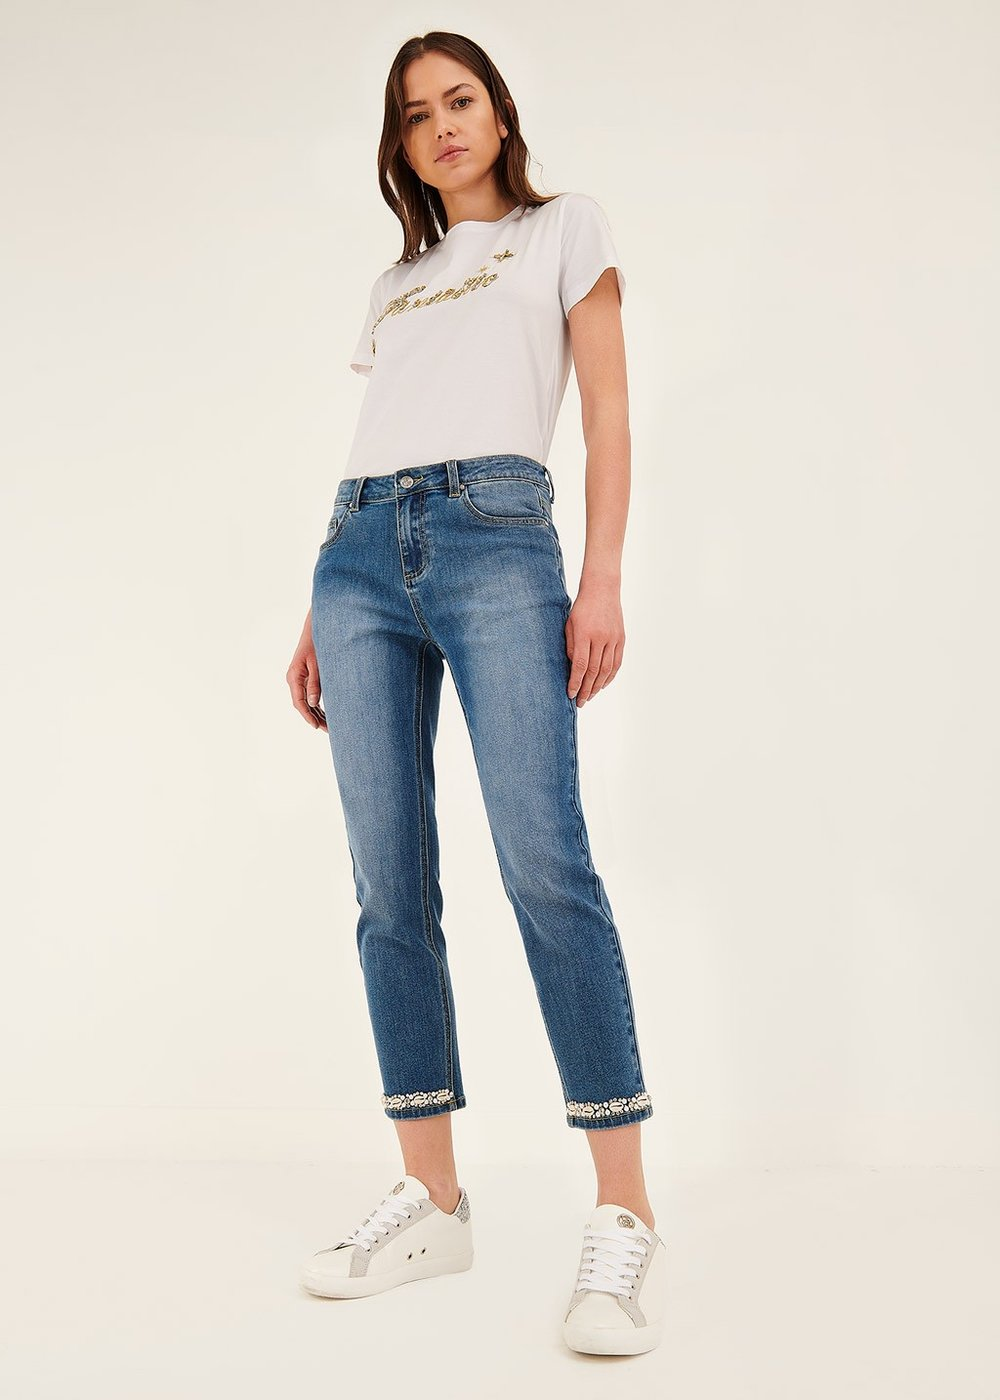 Daniel capri pants with detail at hem - Denim - Woman